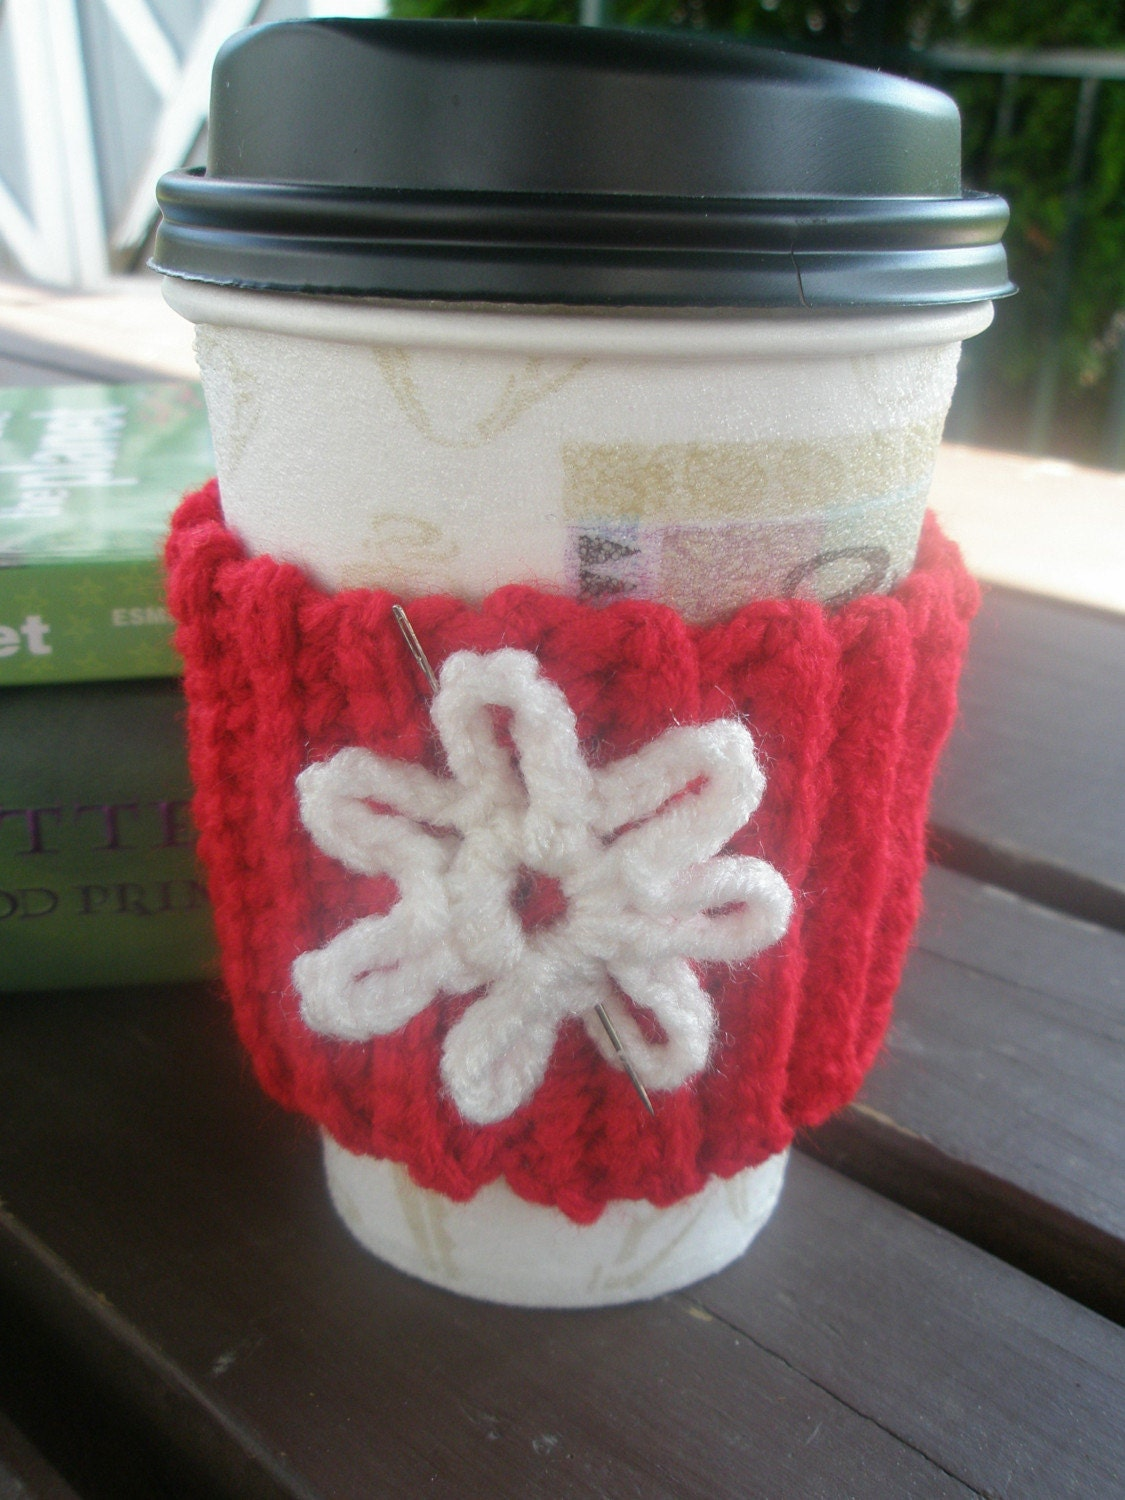 CIJ SALE  Crocheted Coffee Cozy in Cherry Red with white flower